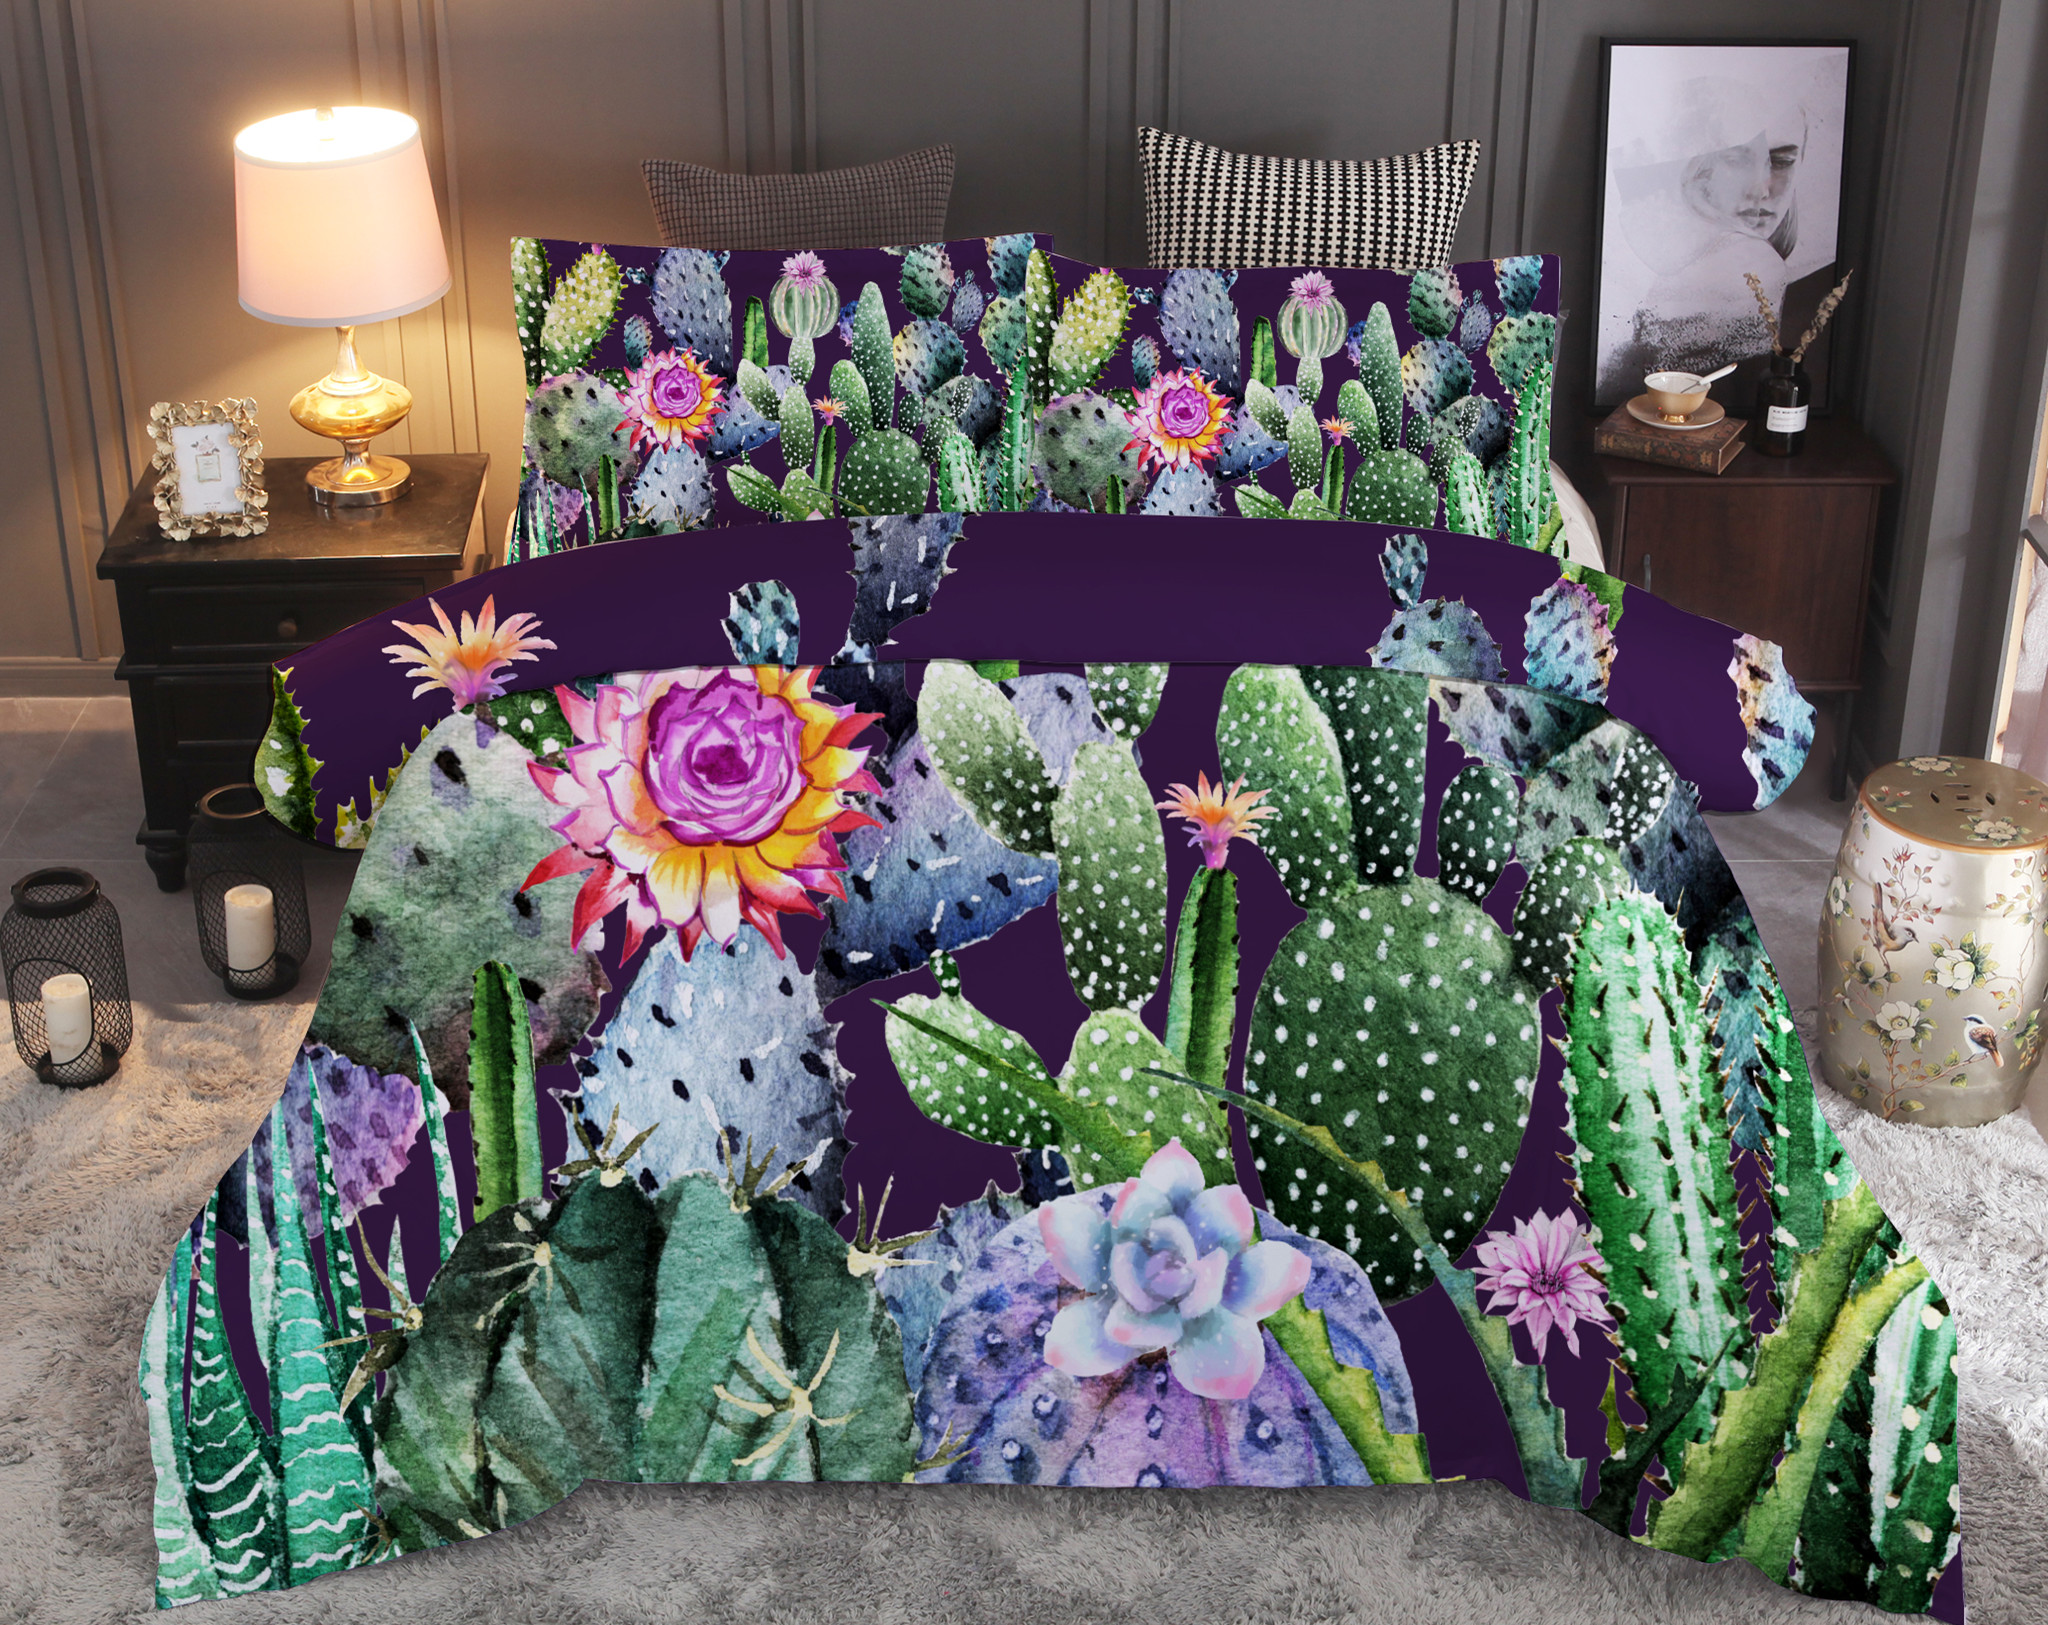 Tropical Plant Bedding Set Cactus with Flower Duvet Cover Sets Queen King Quilt Cover Bed LinenTropical Plant Bedding Set Cactus with Flower Duvet Cover Sets Queen King Quilt Cover Bed Linen